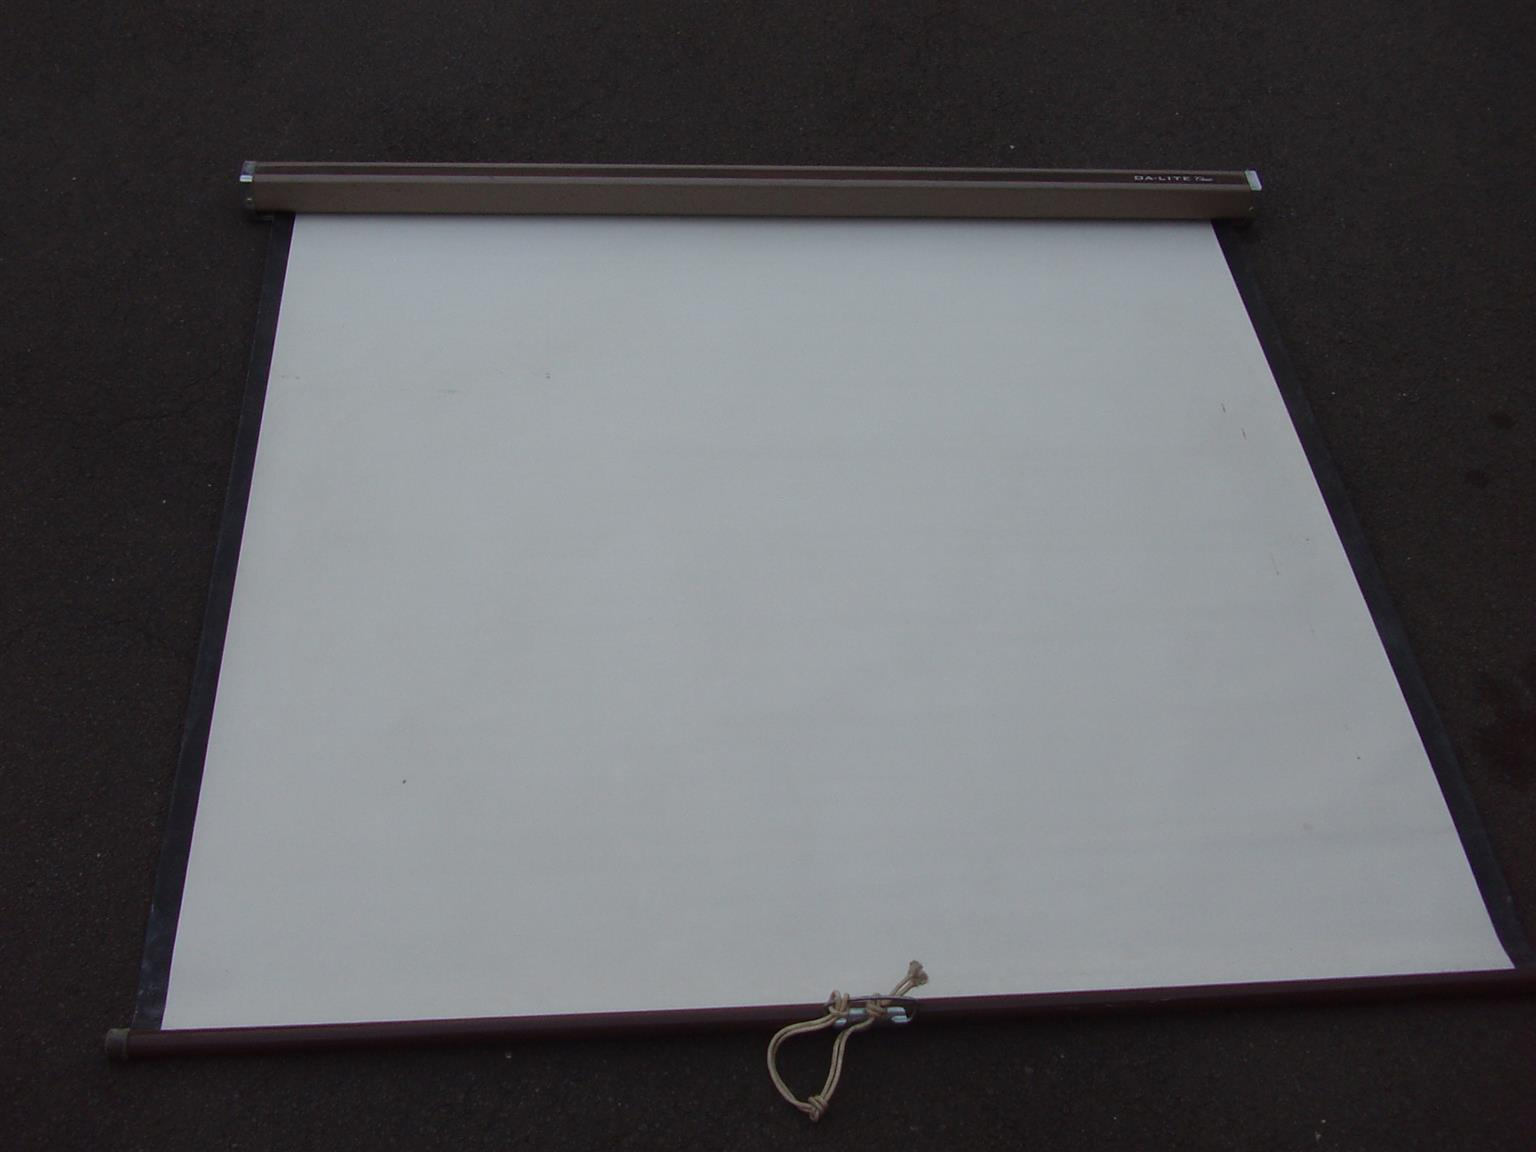 Projection Screen - Pull down screen